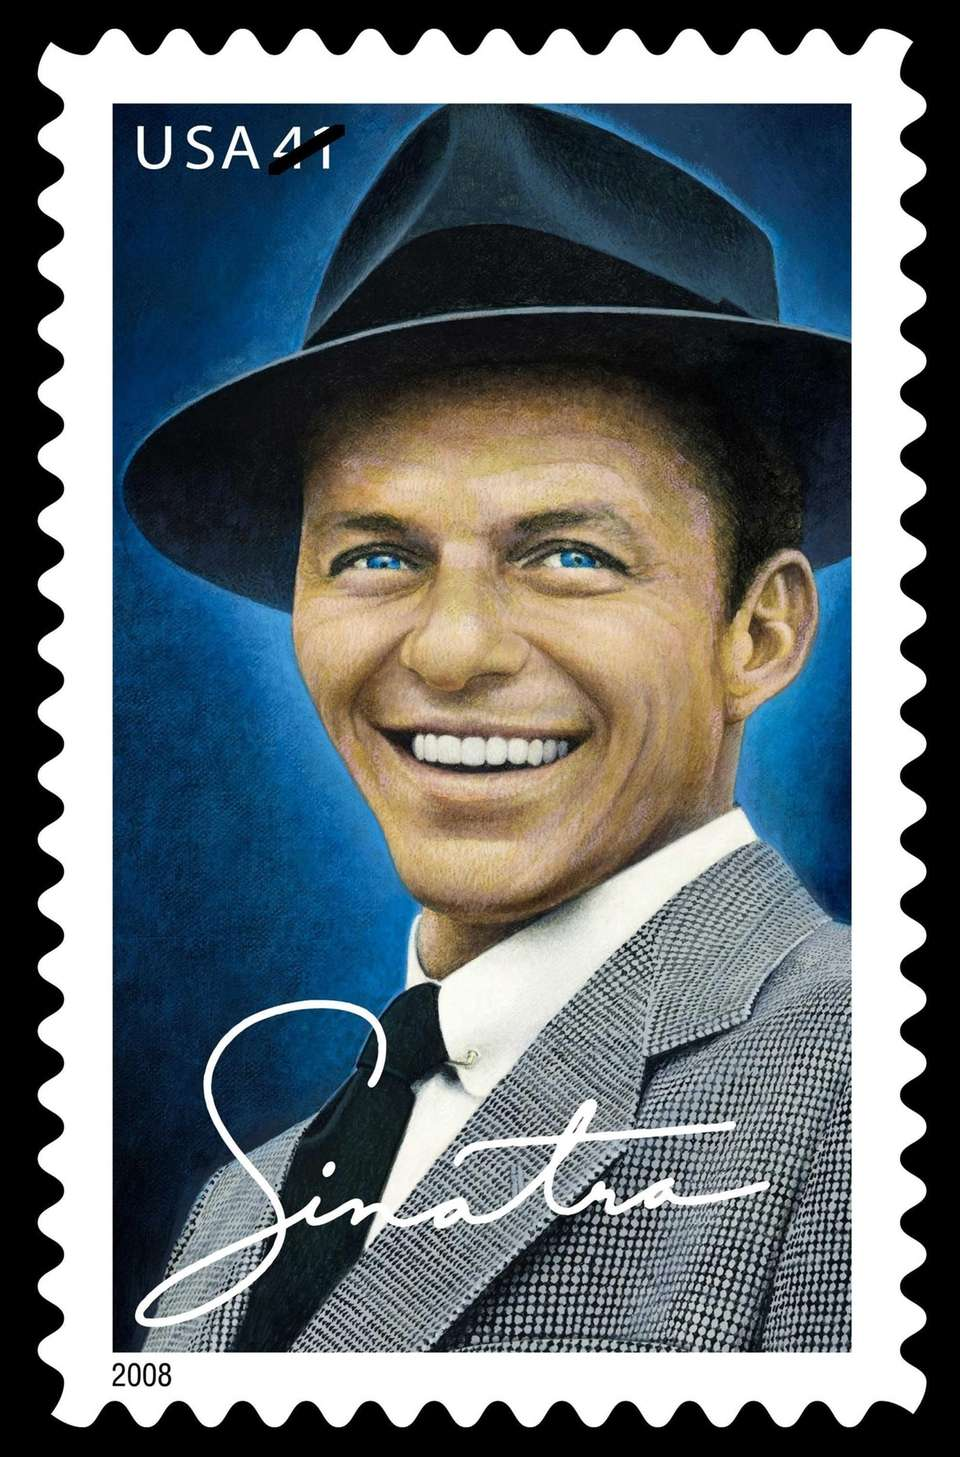 The Frank Sinatra commemorative postal stamp was released